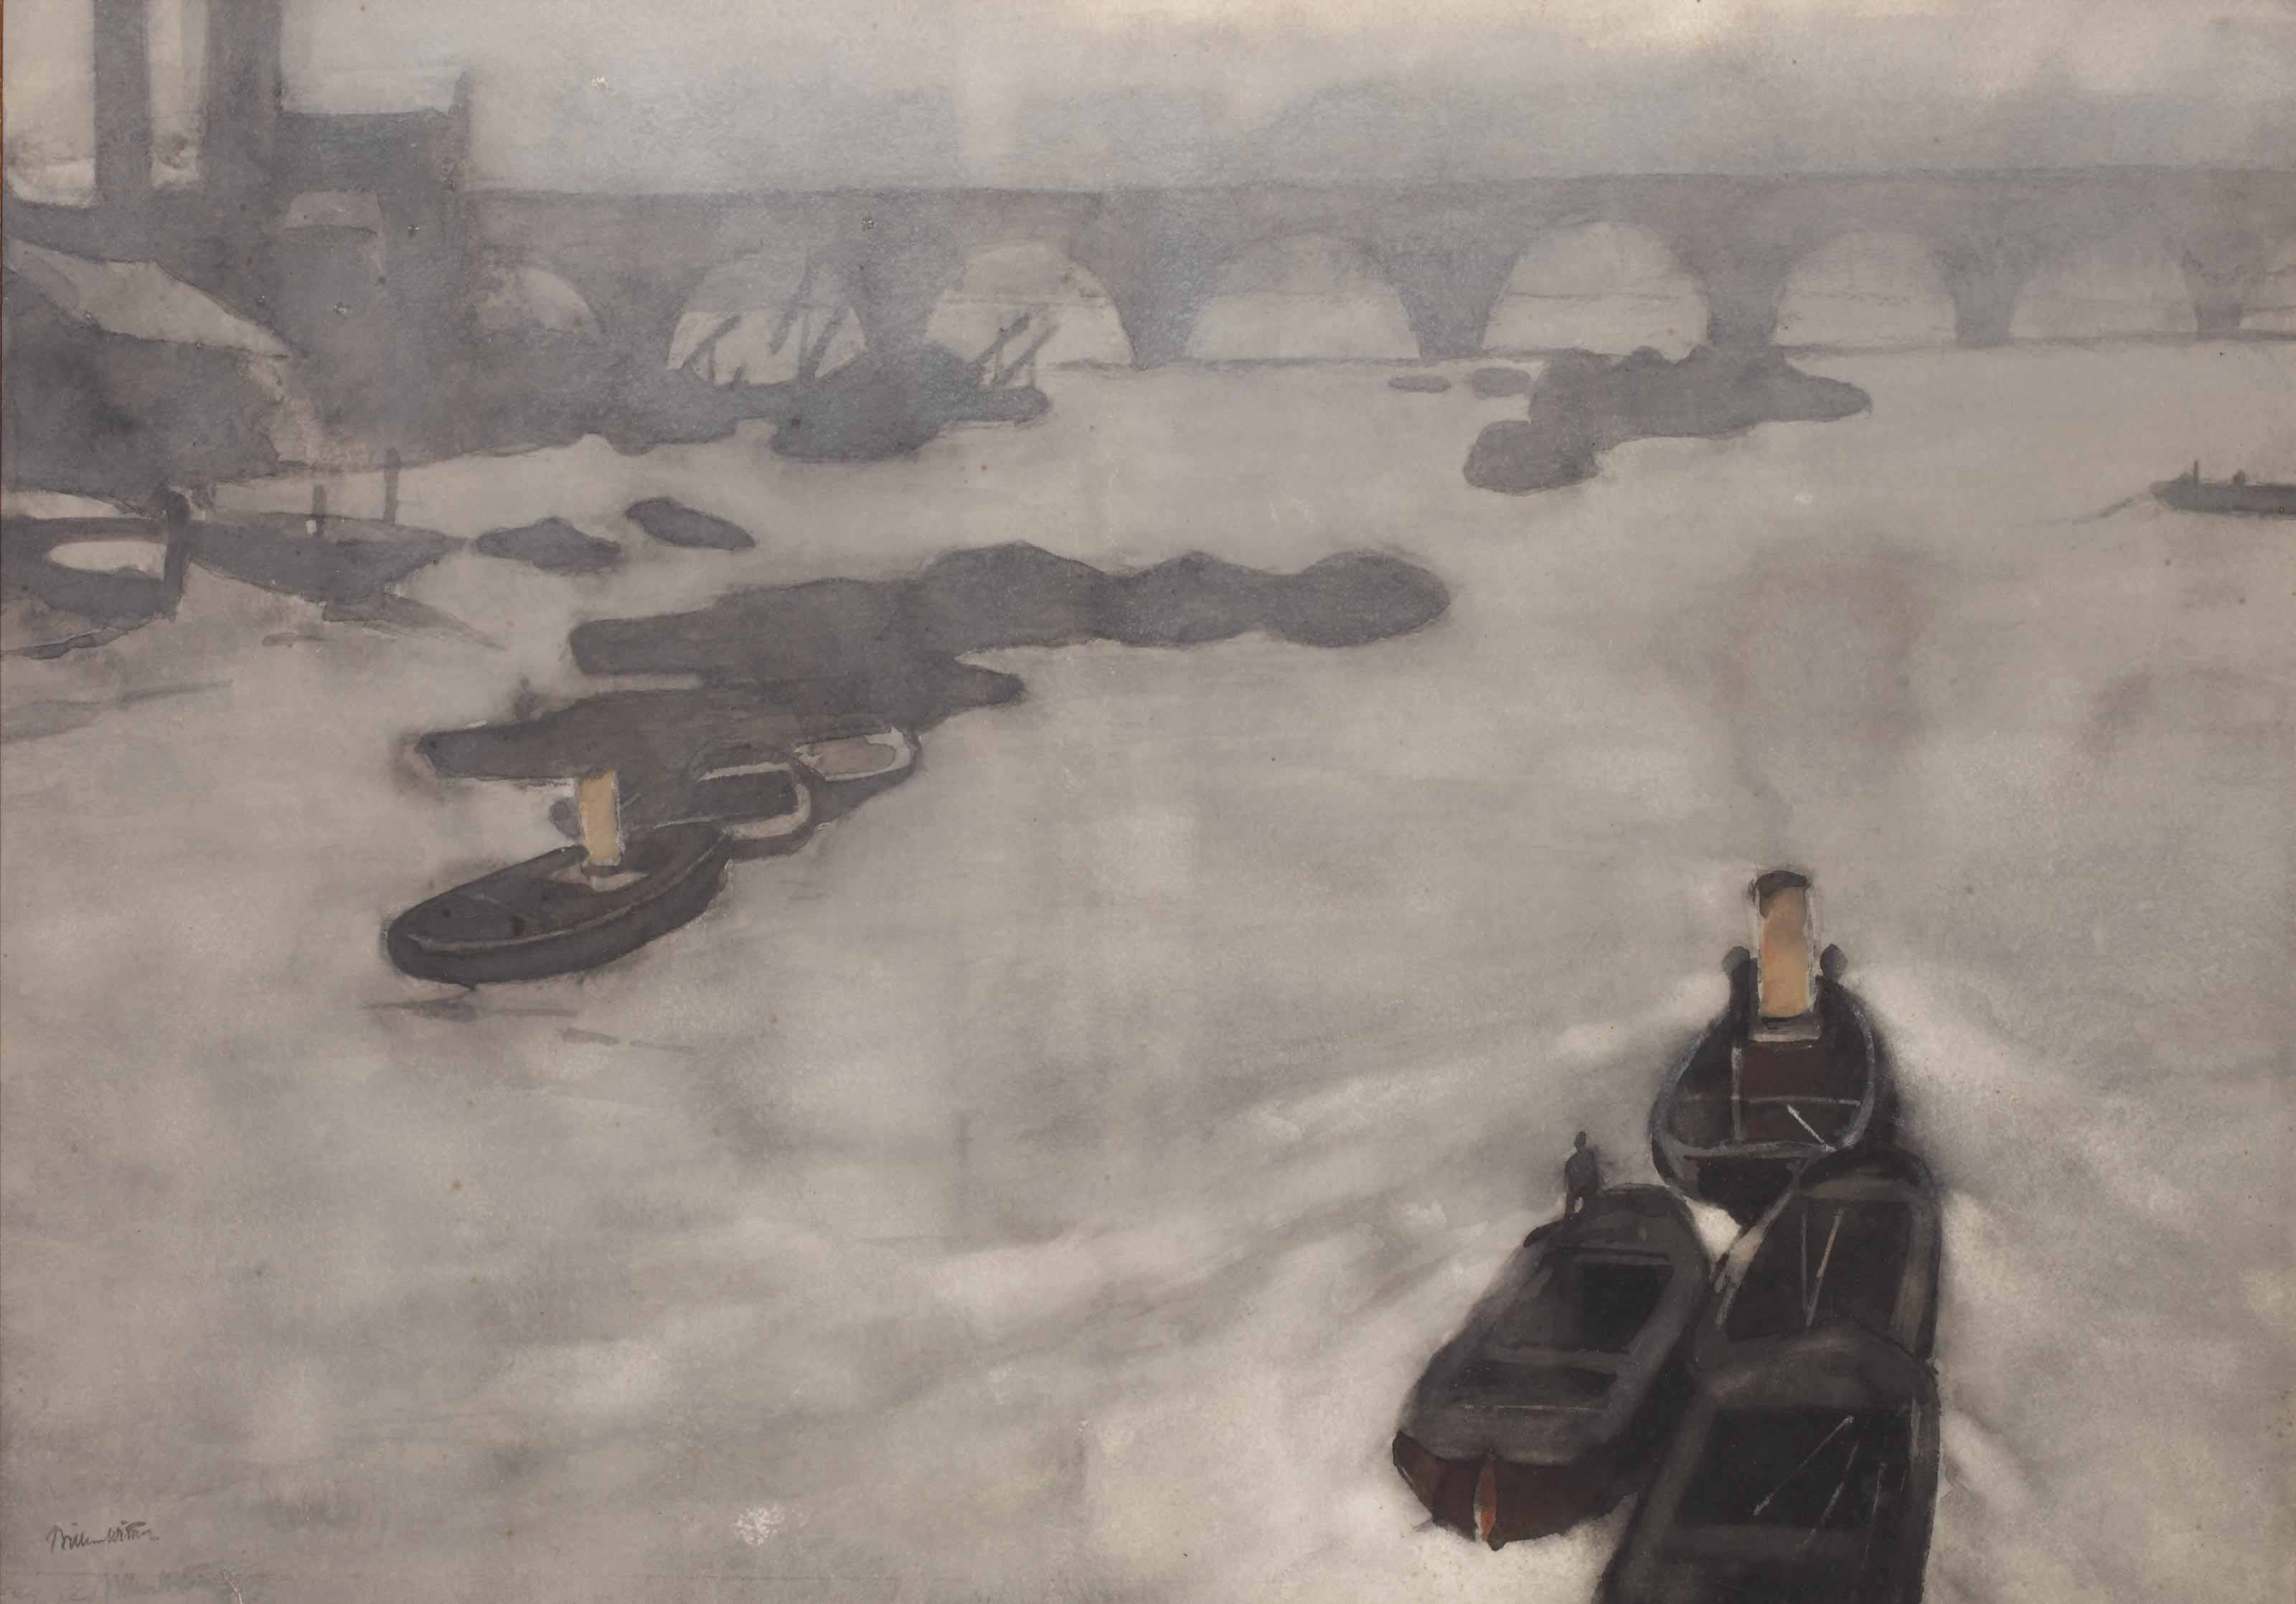 Boats on the Thames in the fog, London